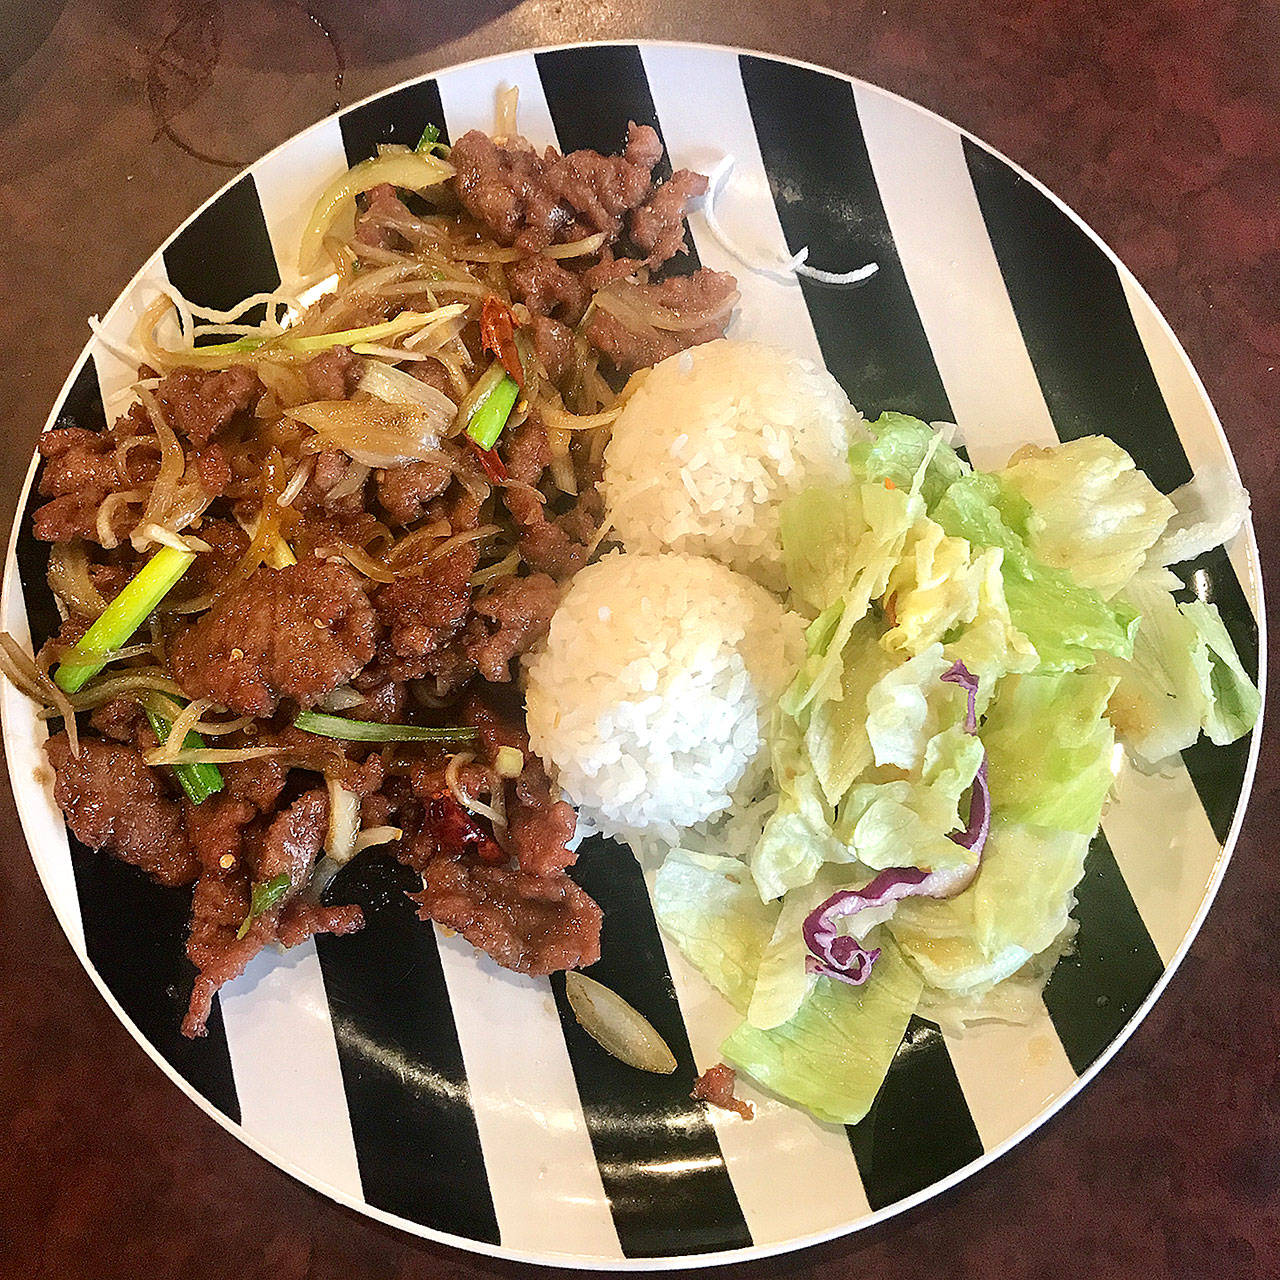 Mongolian beef is served with rice and salad for $8.95 at Umami Asian Cuisine in Mukilteo. (Andrea Brown/The Herald)